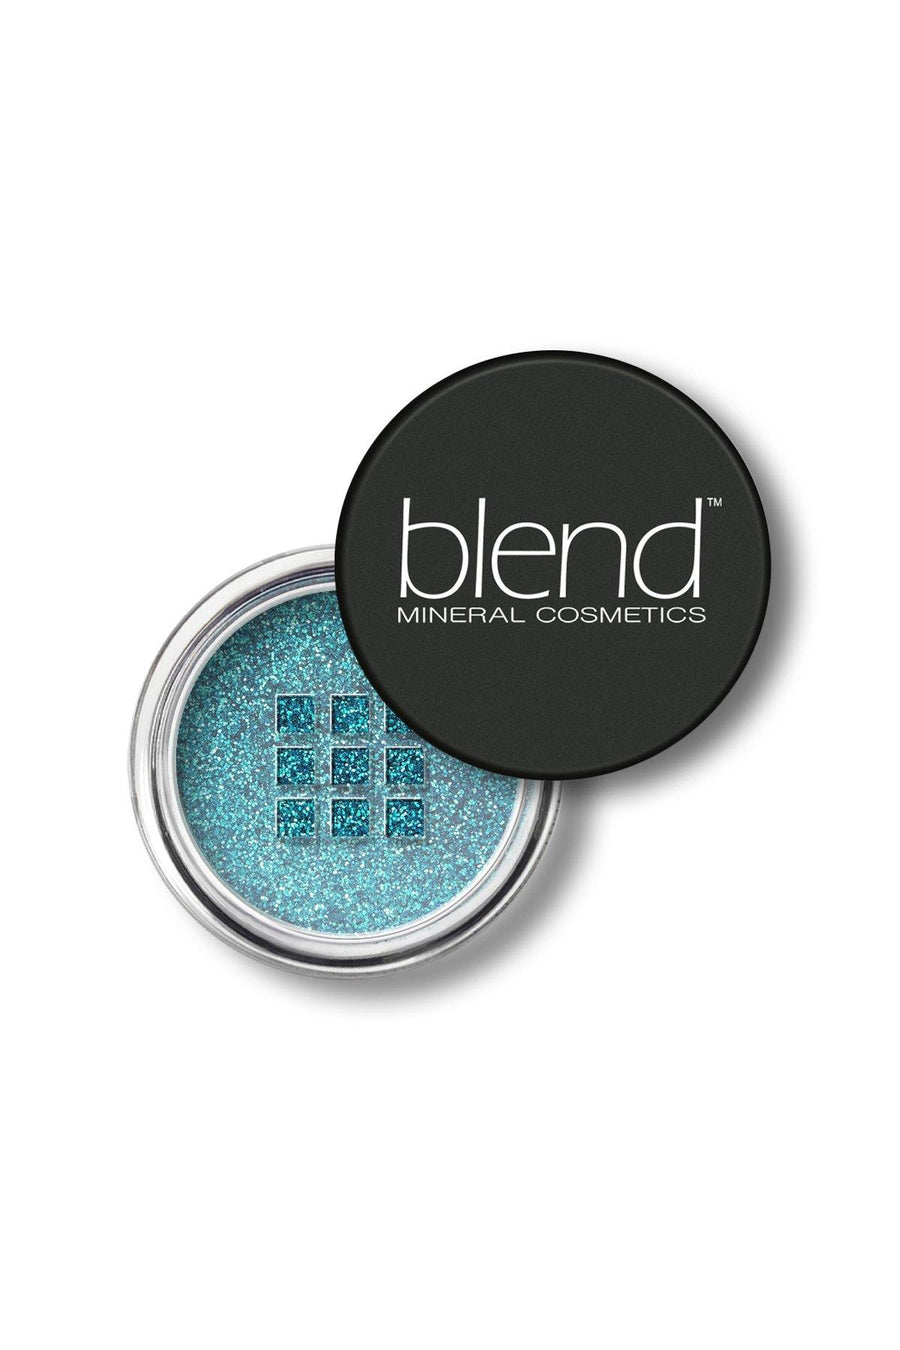 Glitter Powder #7 - Teal - Blend Mineral Cosmetics